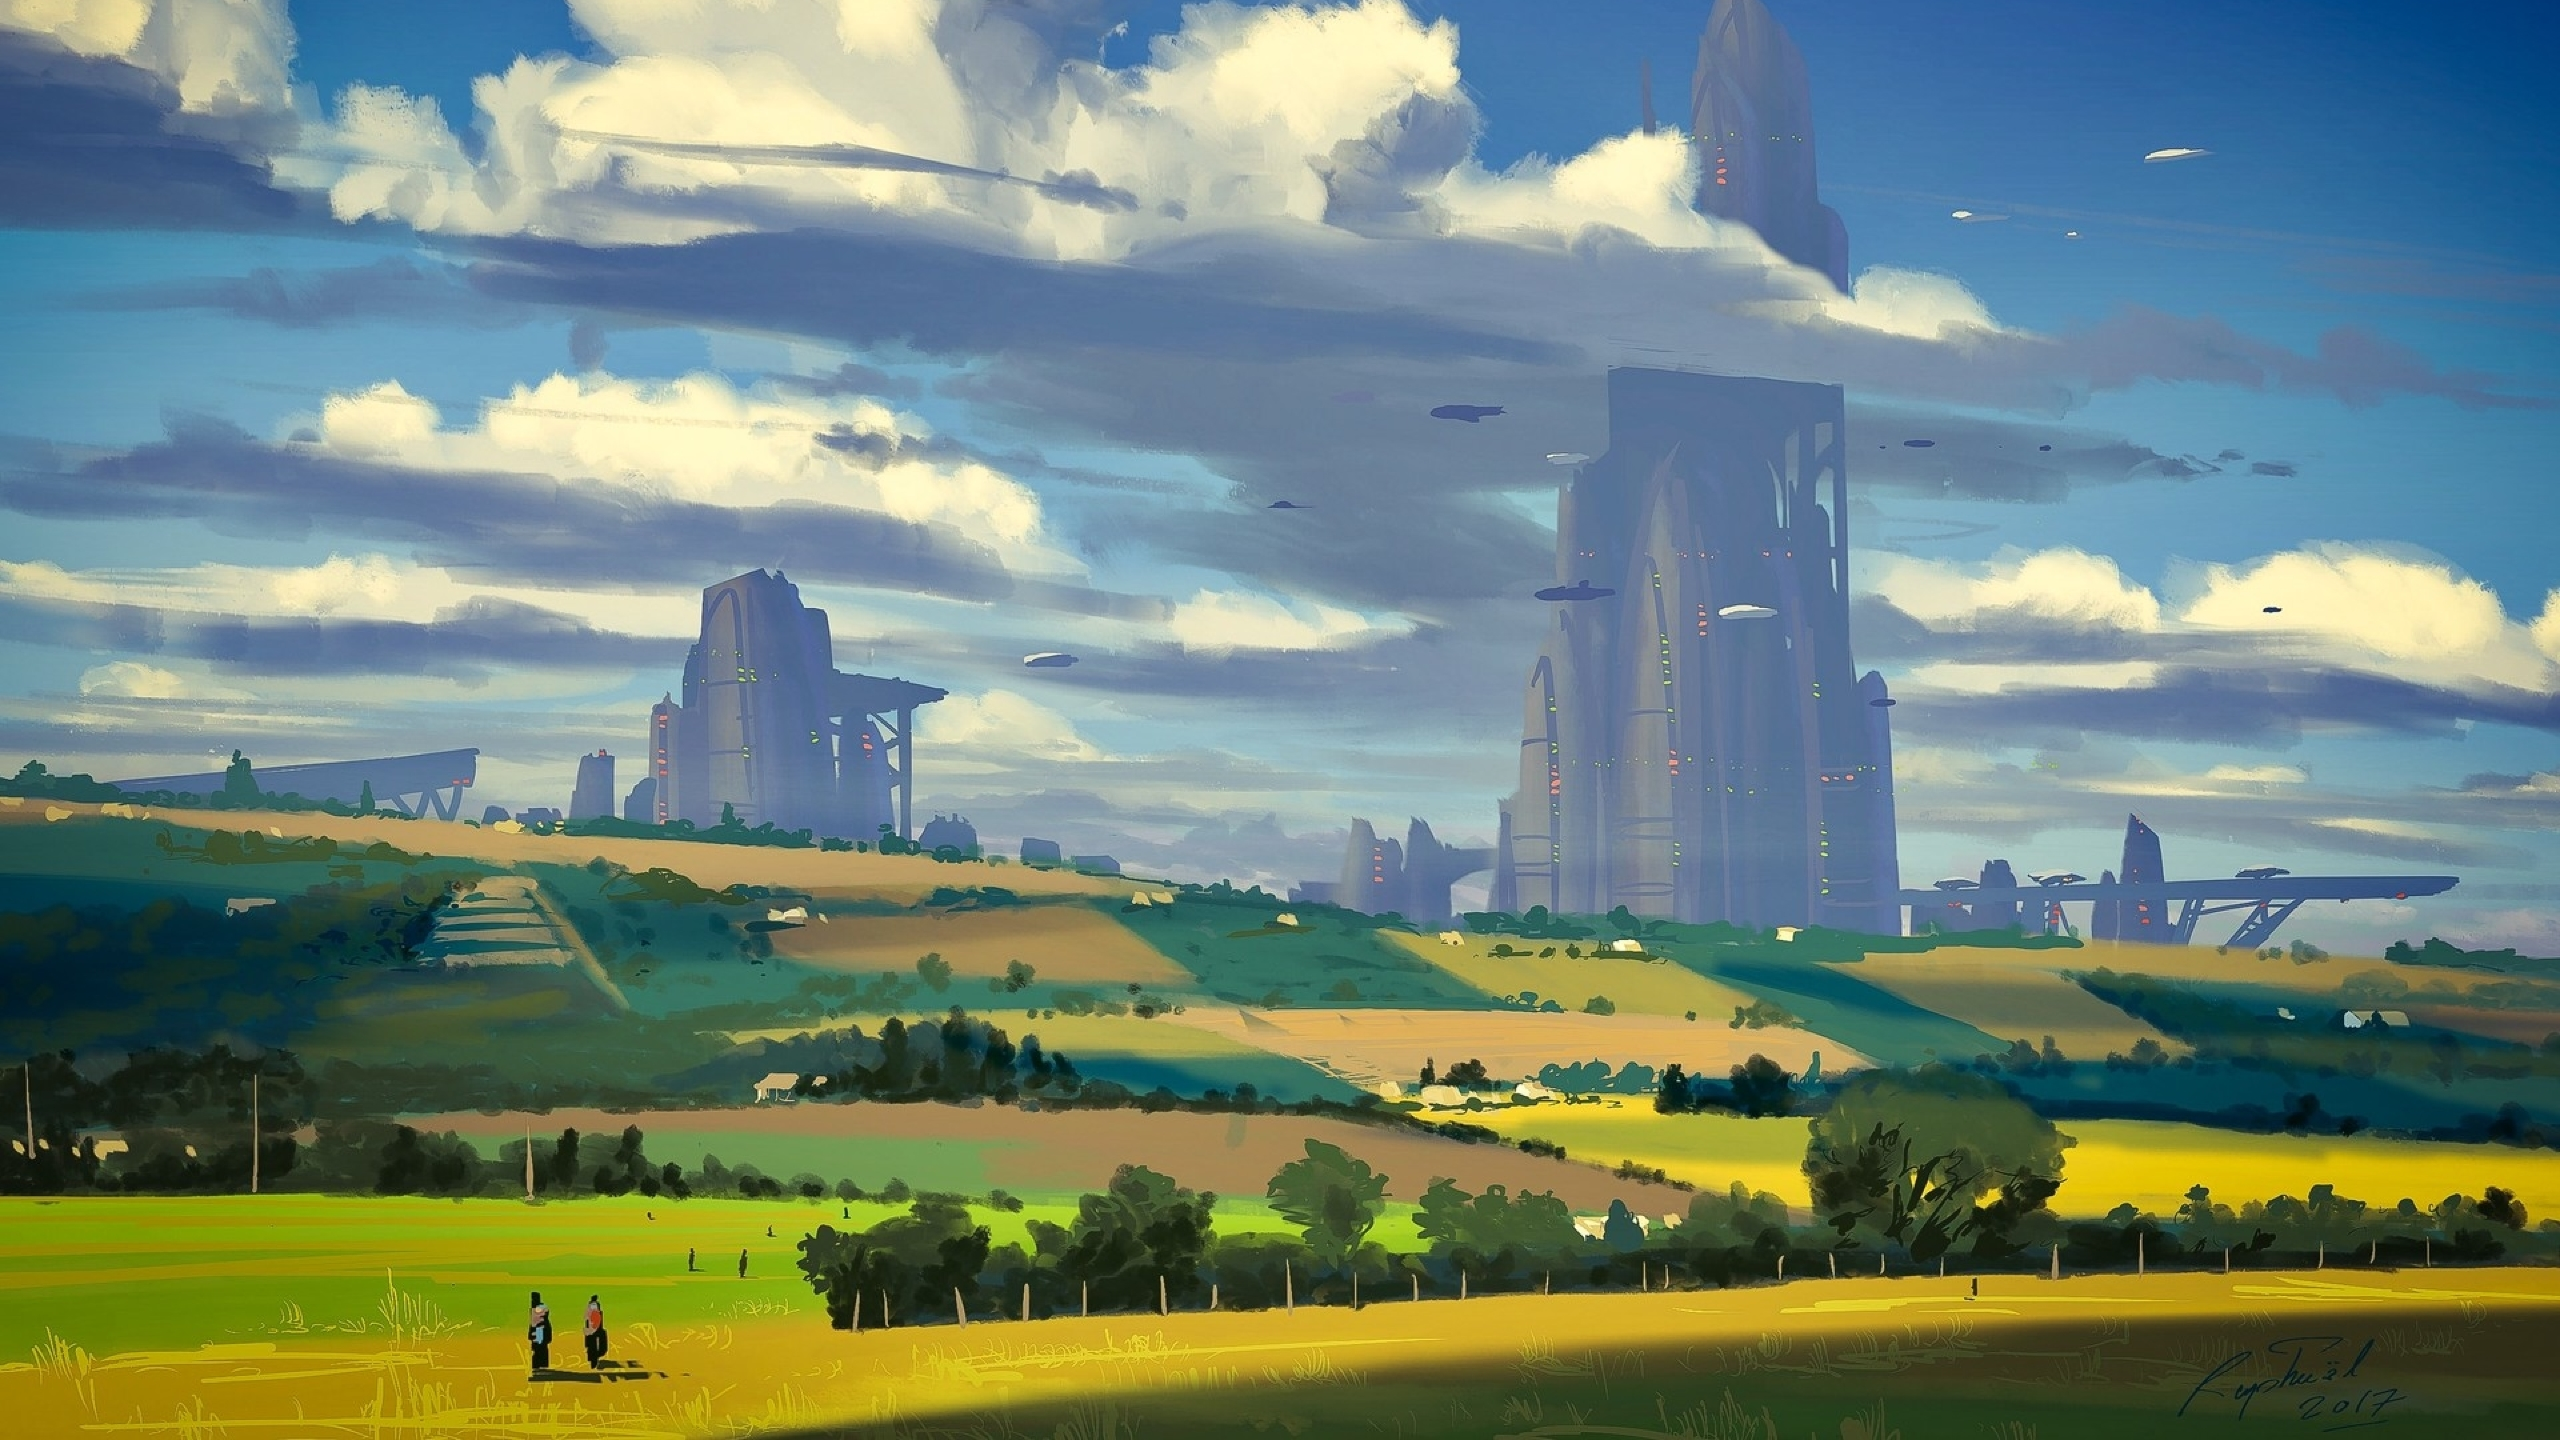 Download Sci Fi Countryside Painting City 1280x2120 Resolution Full